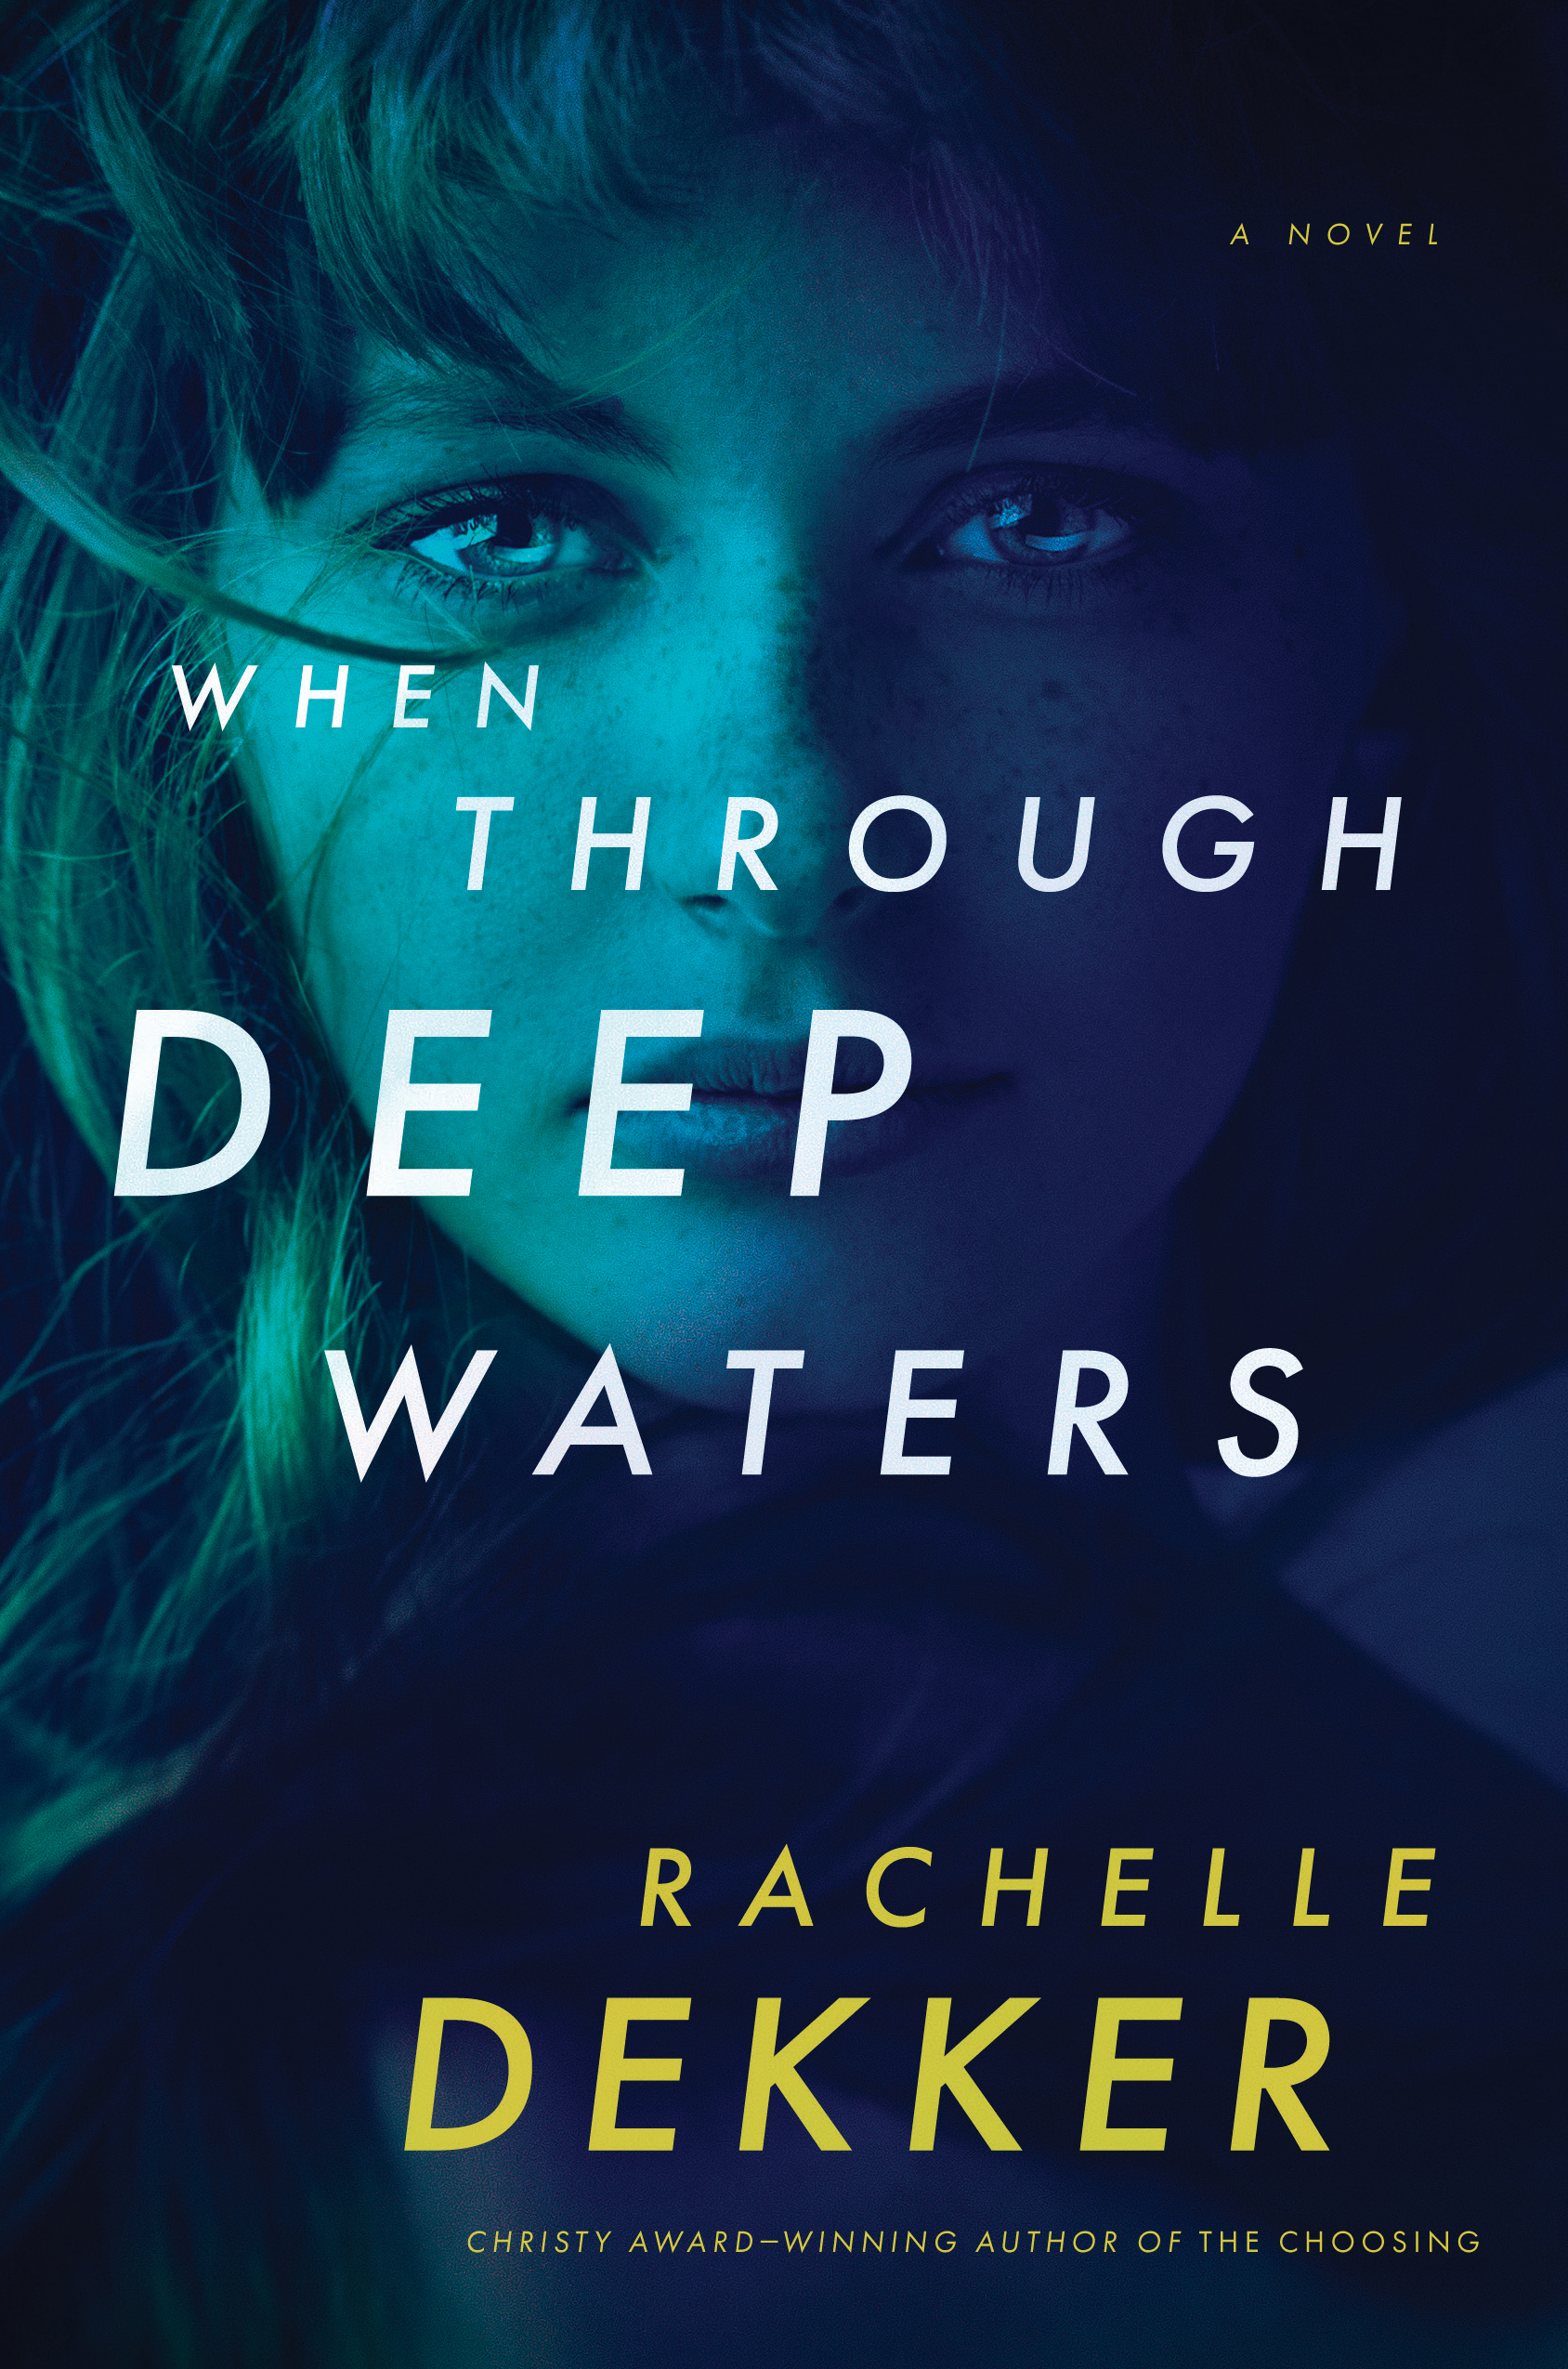 Rachelle Dekker The Writer Her Book With Giveaway